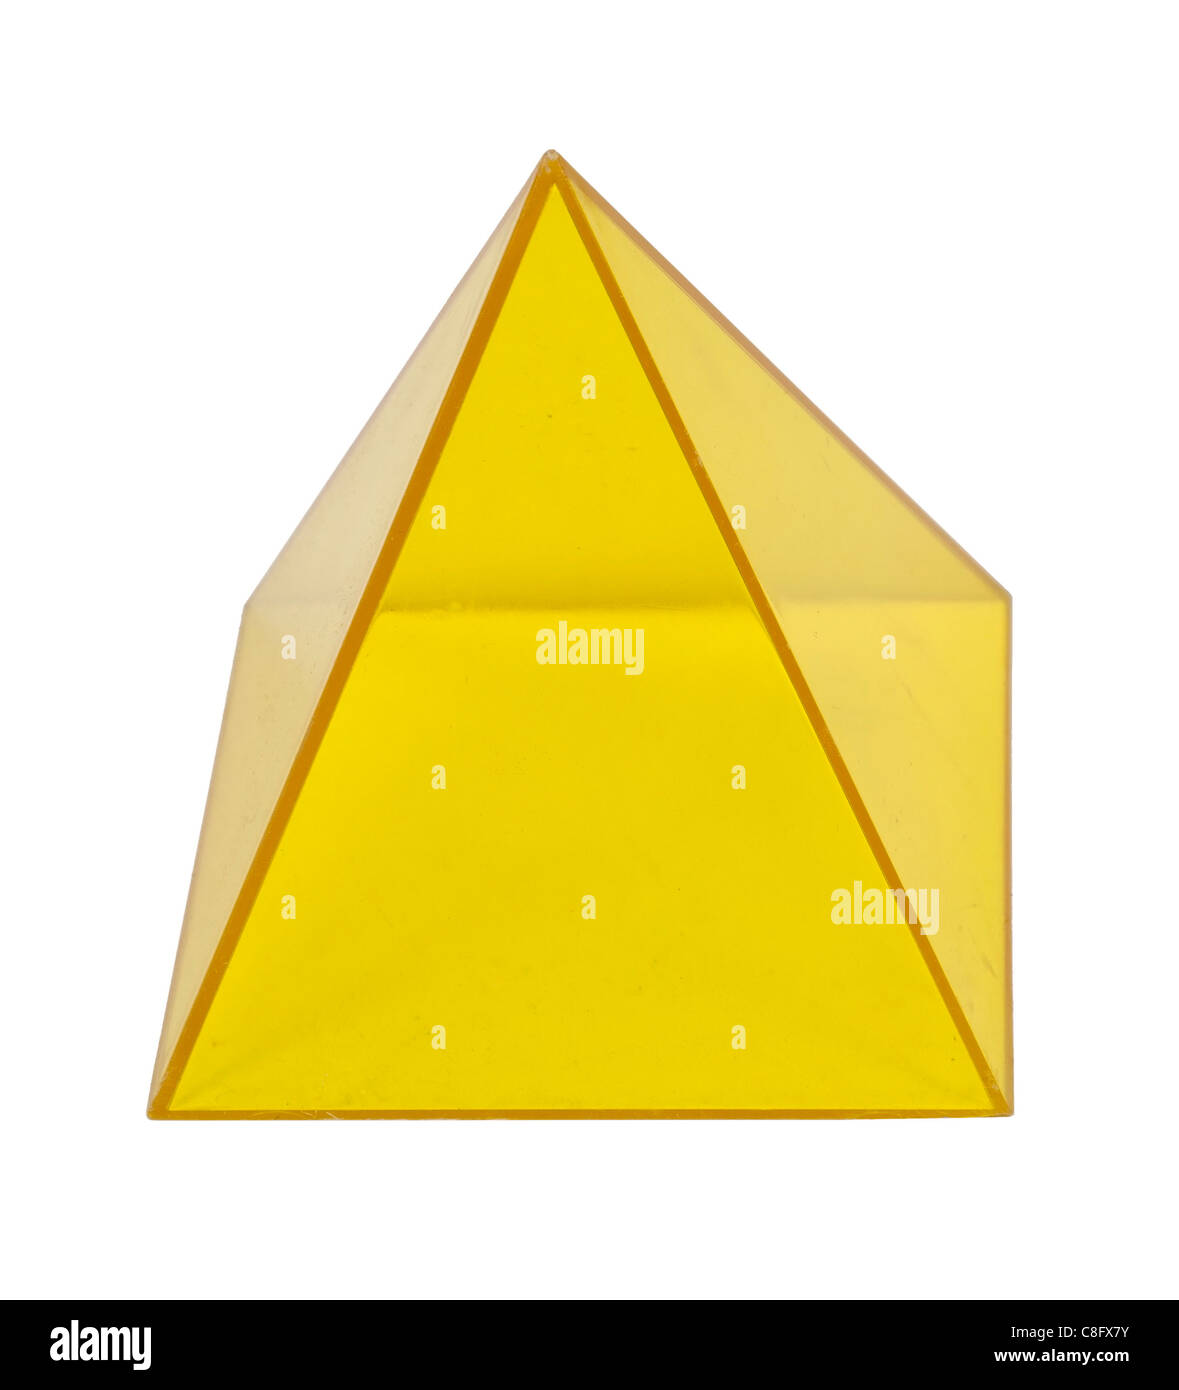 Yellow pyramid Several geometric shapes used for educational purposes - path included - Stock Image